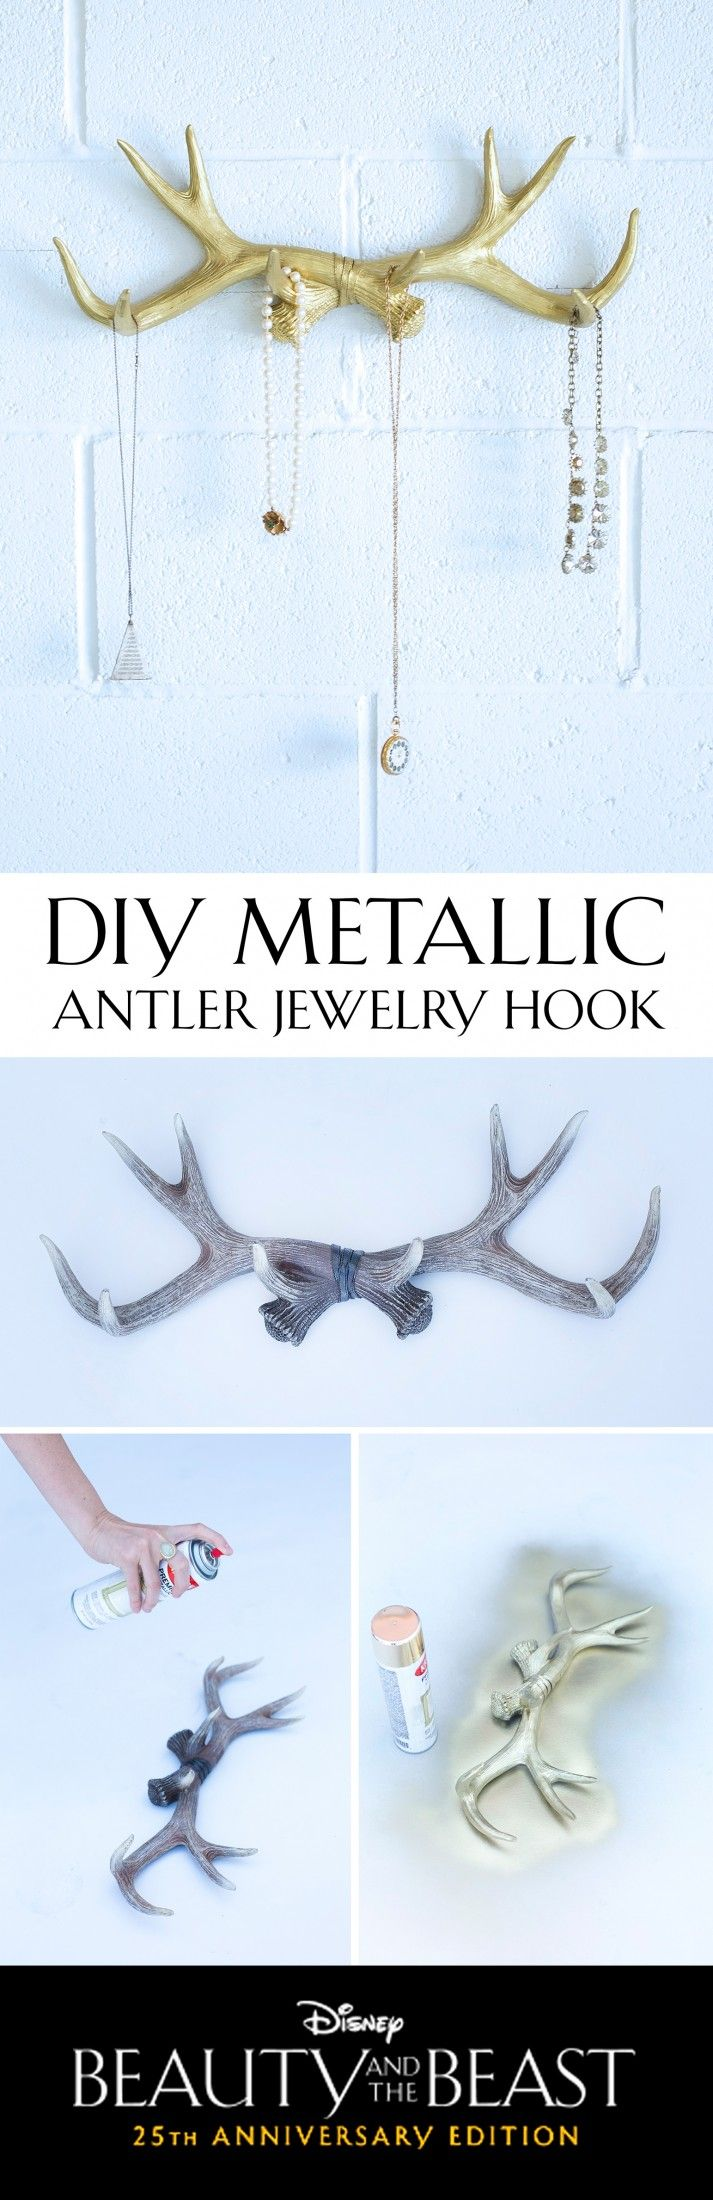 Refurbish rustic antlers to create a feminine jewelry hook for your home. [ad]